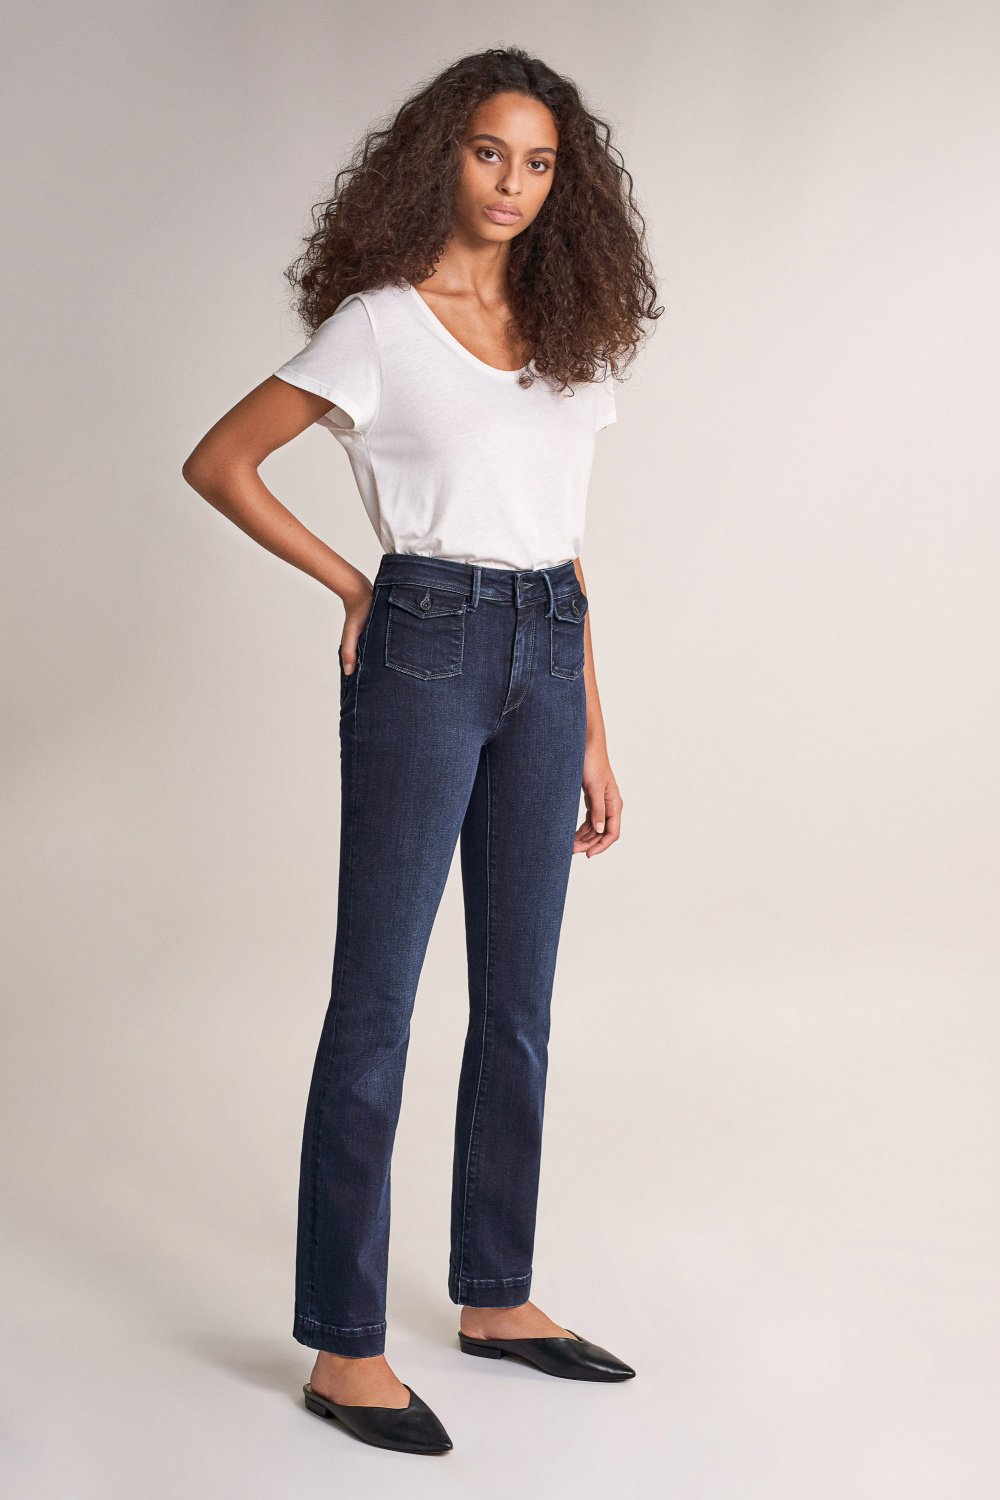 Push Up Wonder boot cut high-waisted jeans - Salsa